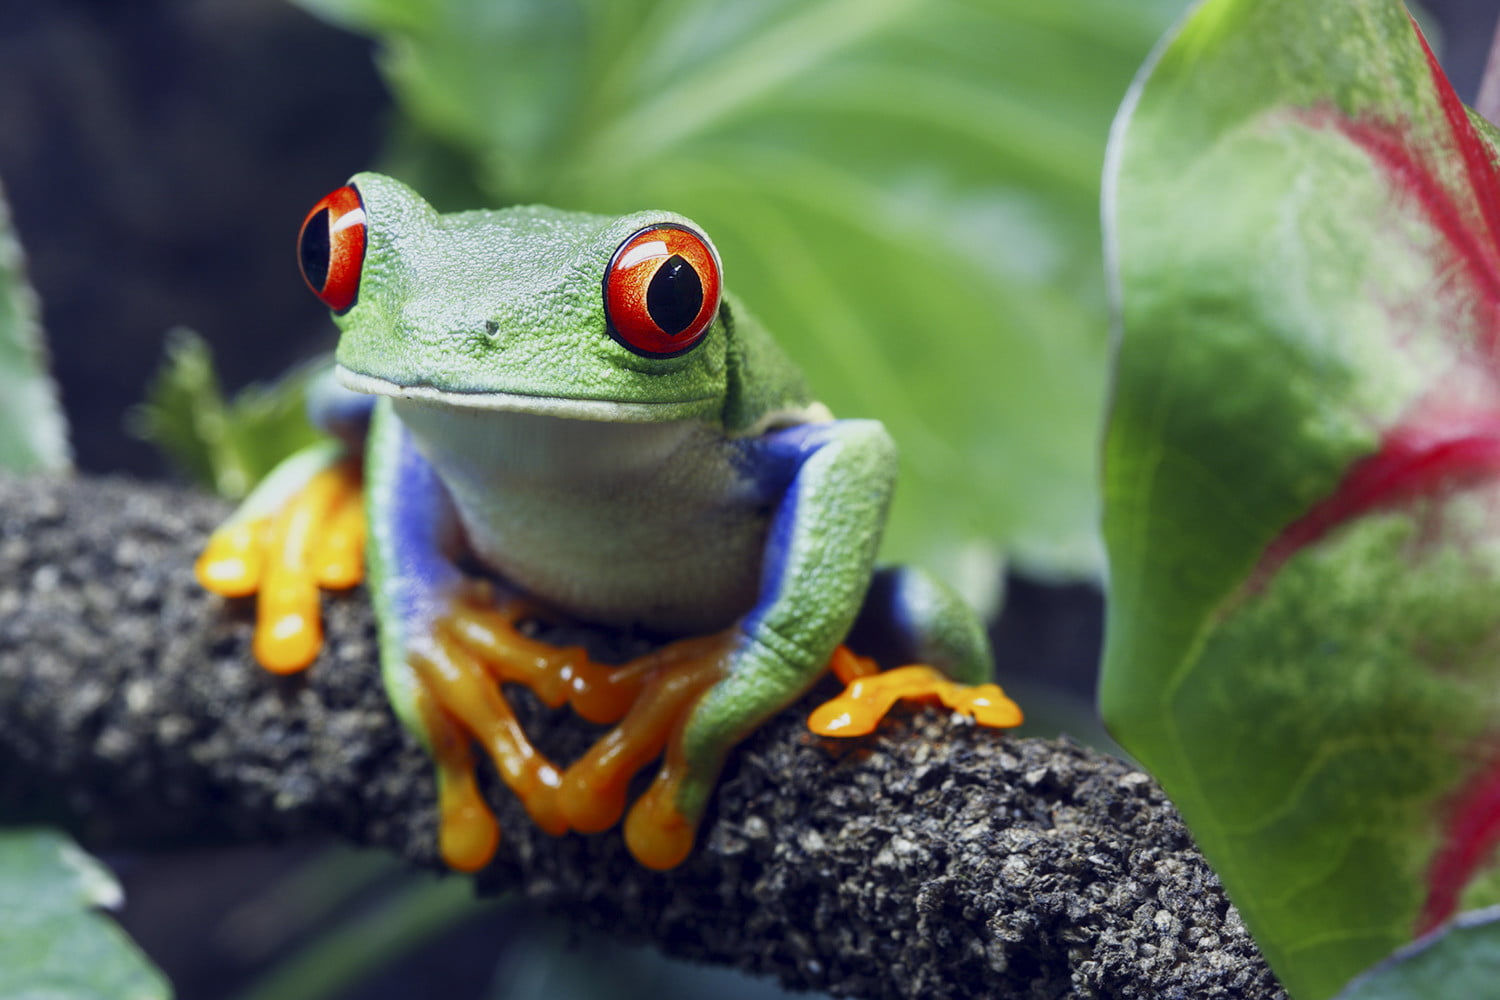 Red-eyed Tree Frog - From Digital Trends website: www.digitaltrends.com